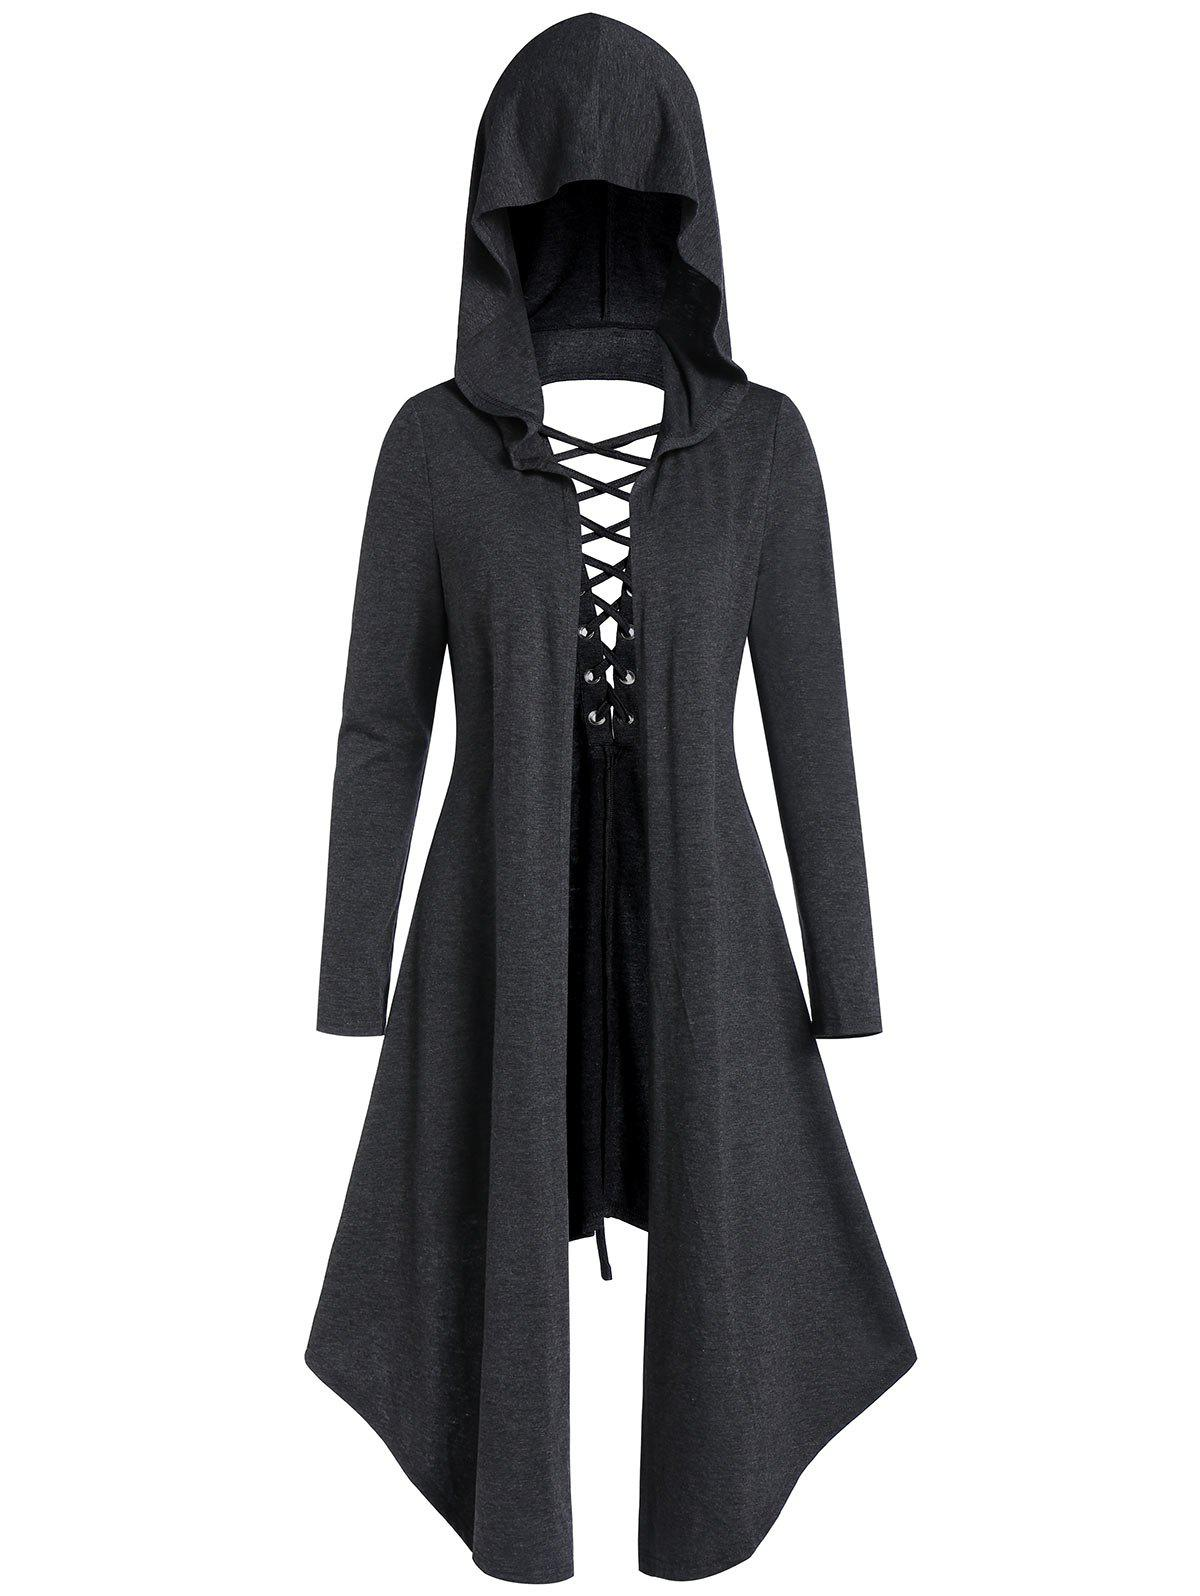 Latest Asymmetric Lace-up Cut Out Open Front Hooded Gothic Coat